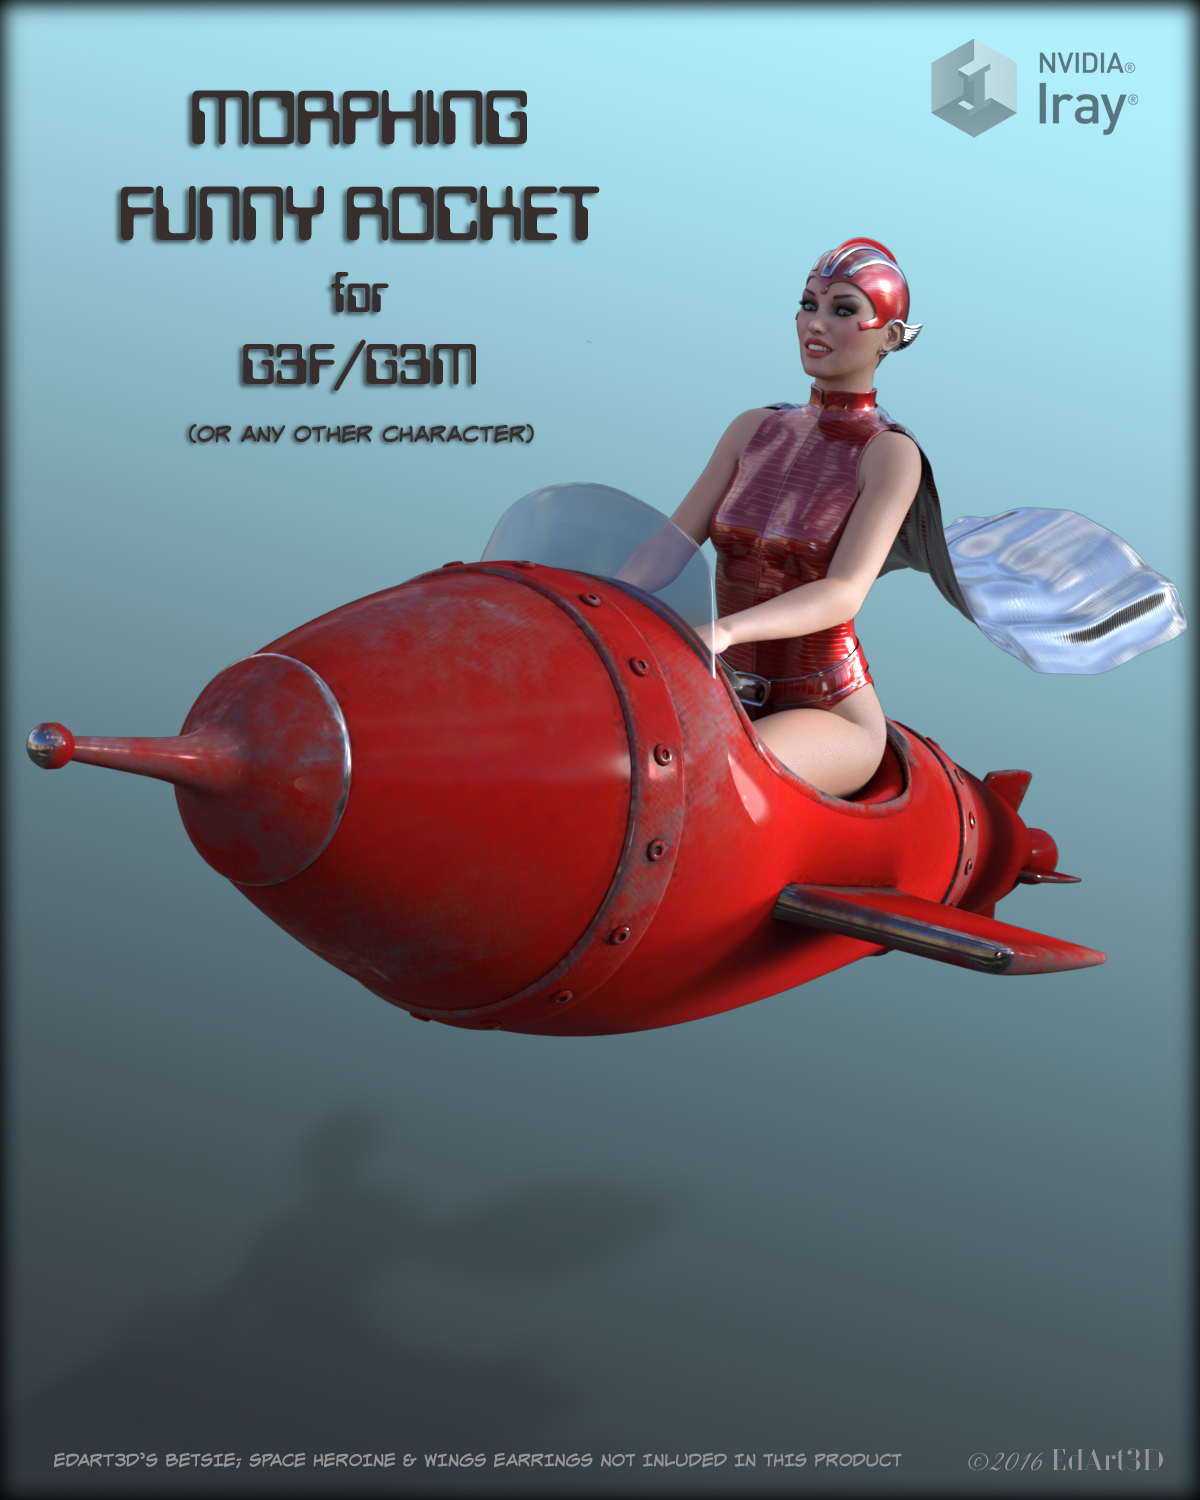 Morphing Funny Rocket for G3F/G3M